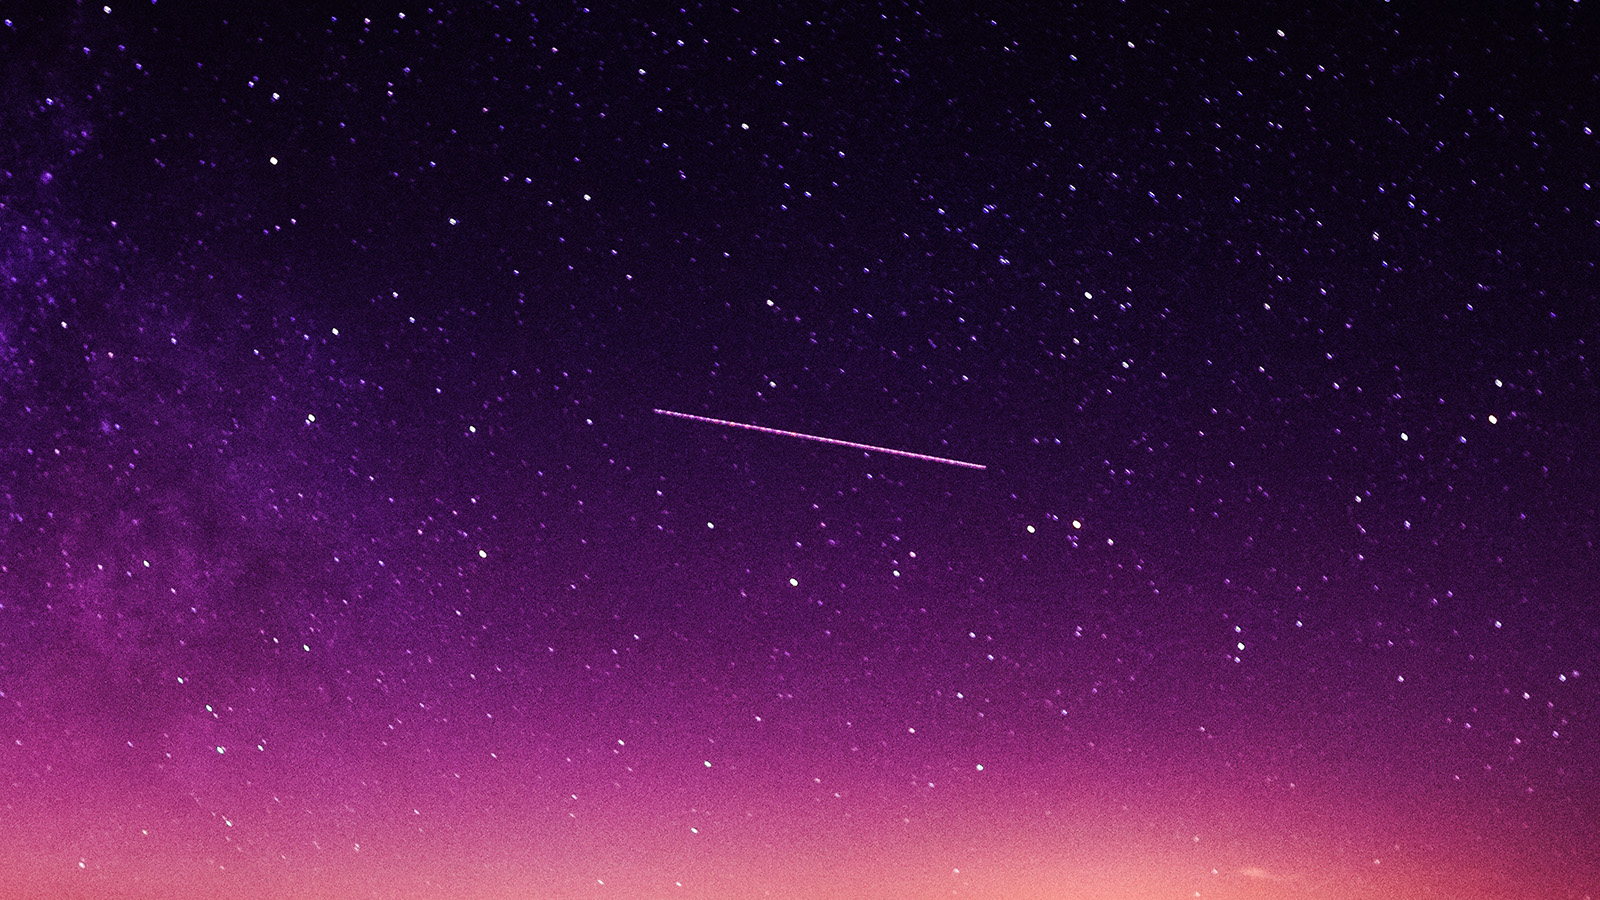 Purple Space Wallpaper Universe and All Planets